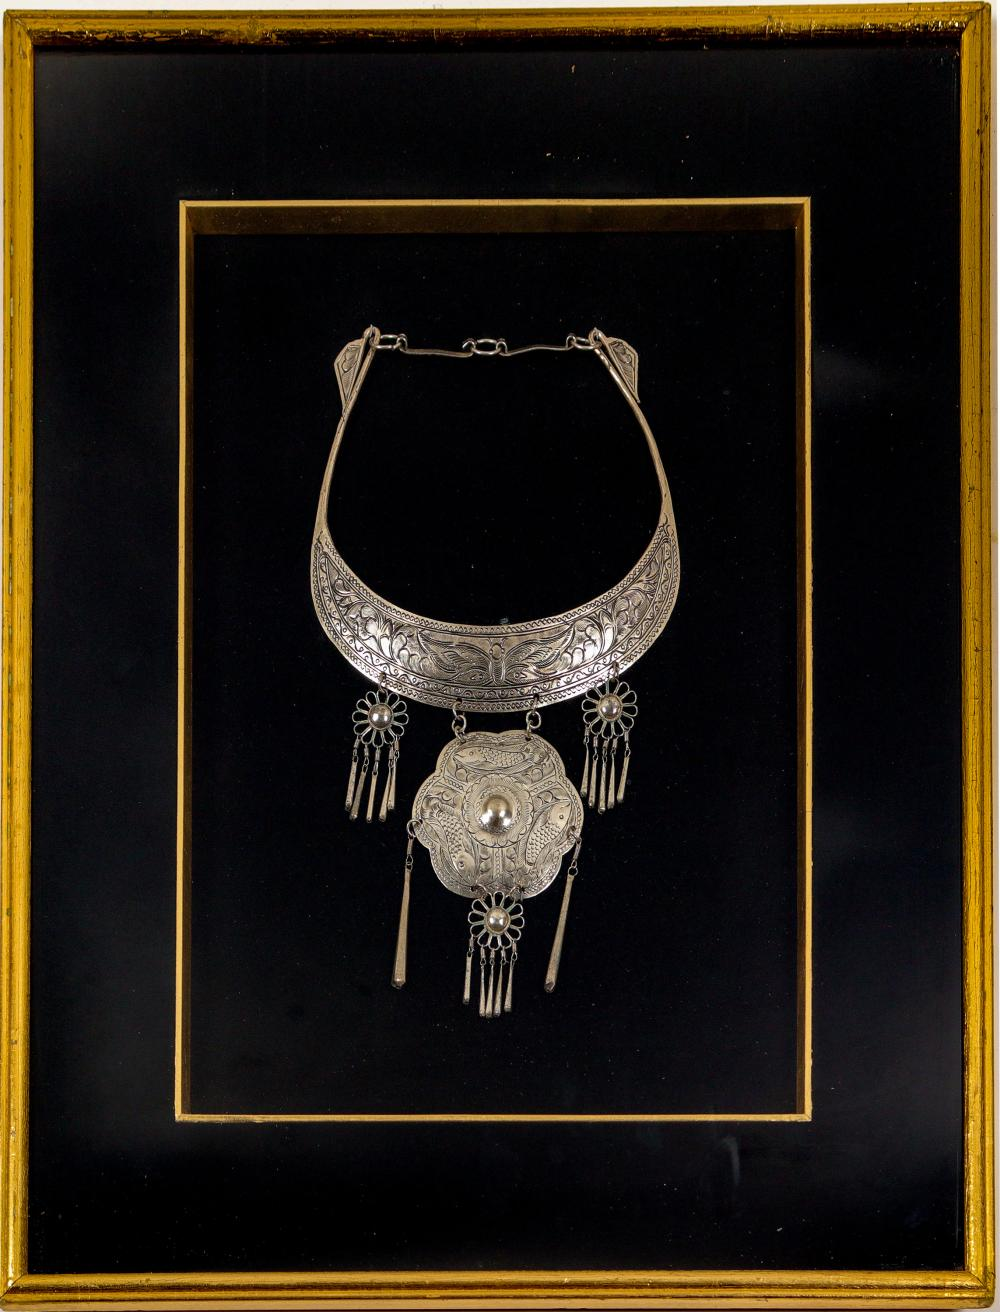 Lot 1025: Necklace (Beautifully Framed) (106235)